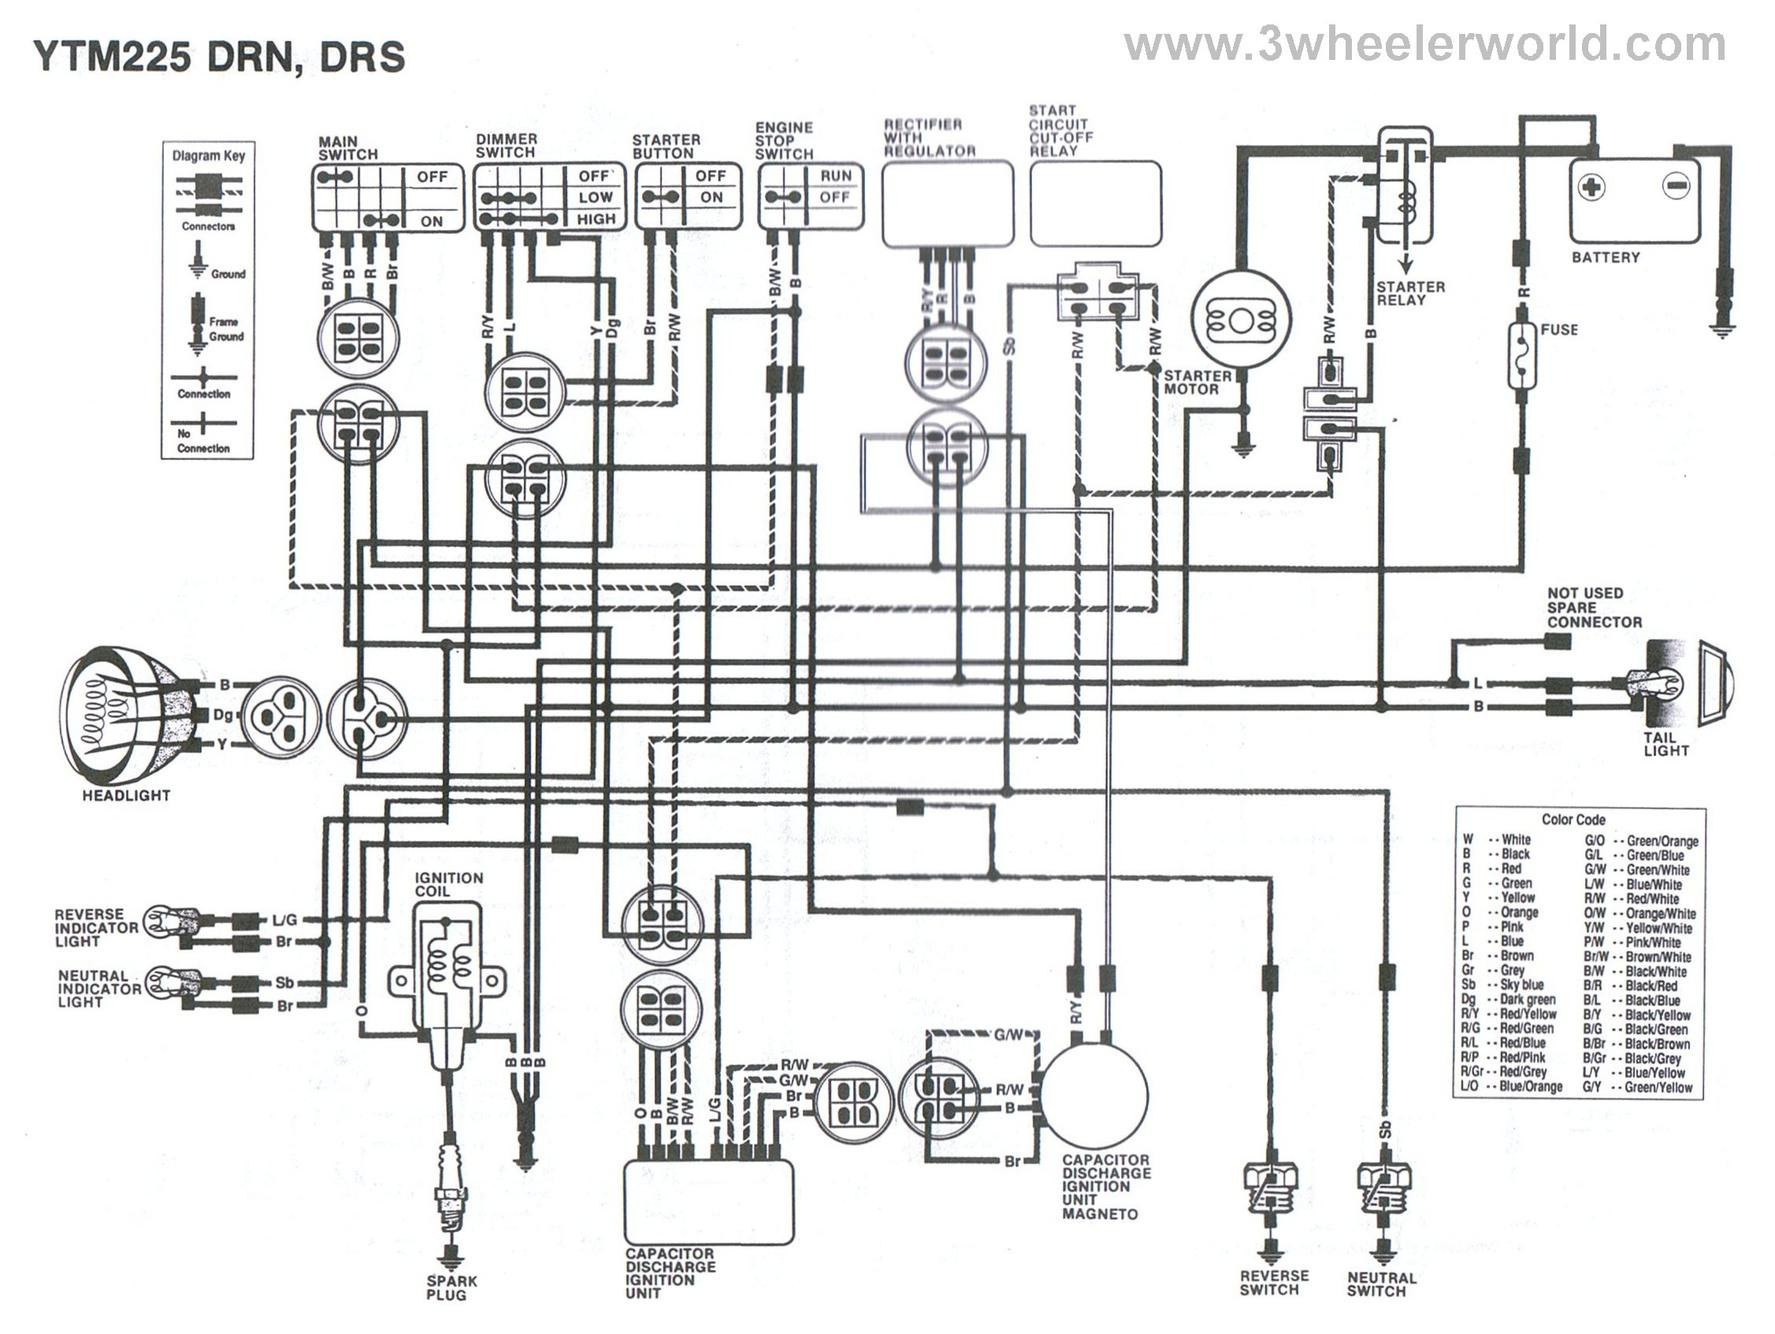 Yamaha 350 Warrior Wiring Diagram New Yamaha Warrior 350 Wiring - Yamaha Warrior 350 Wiring Diagram